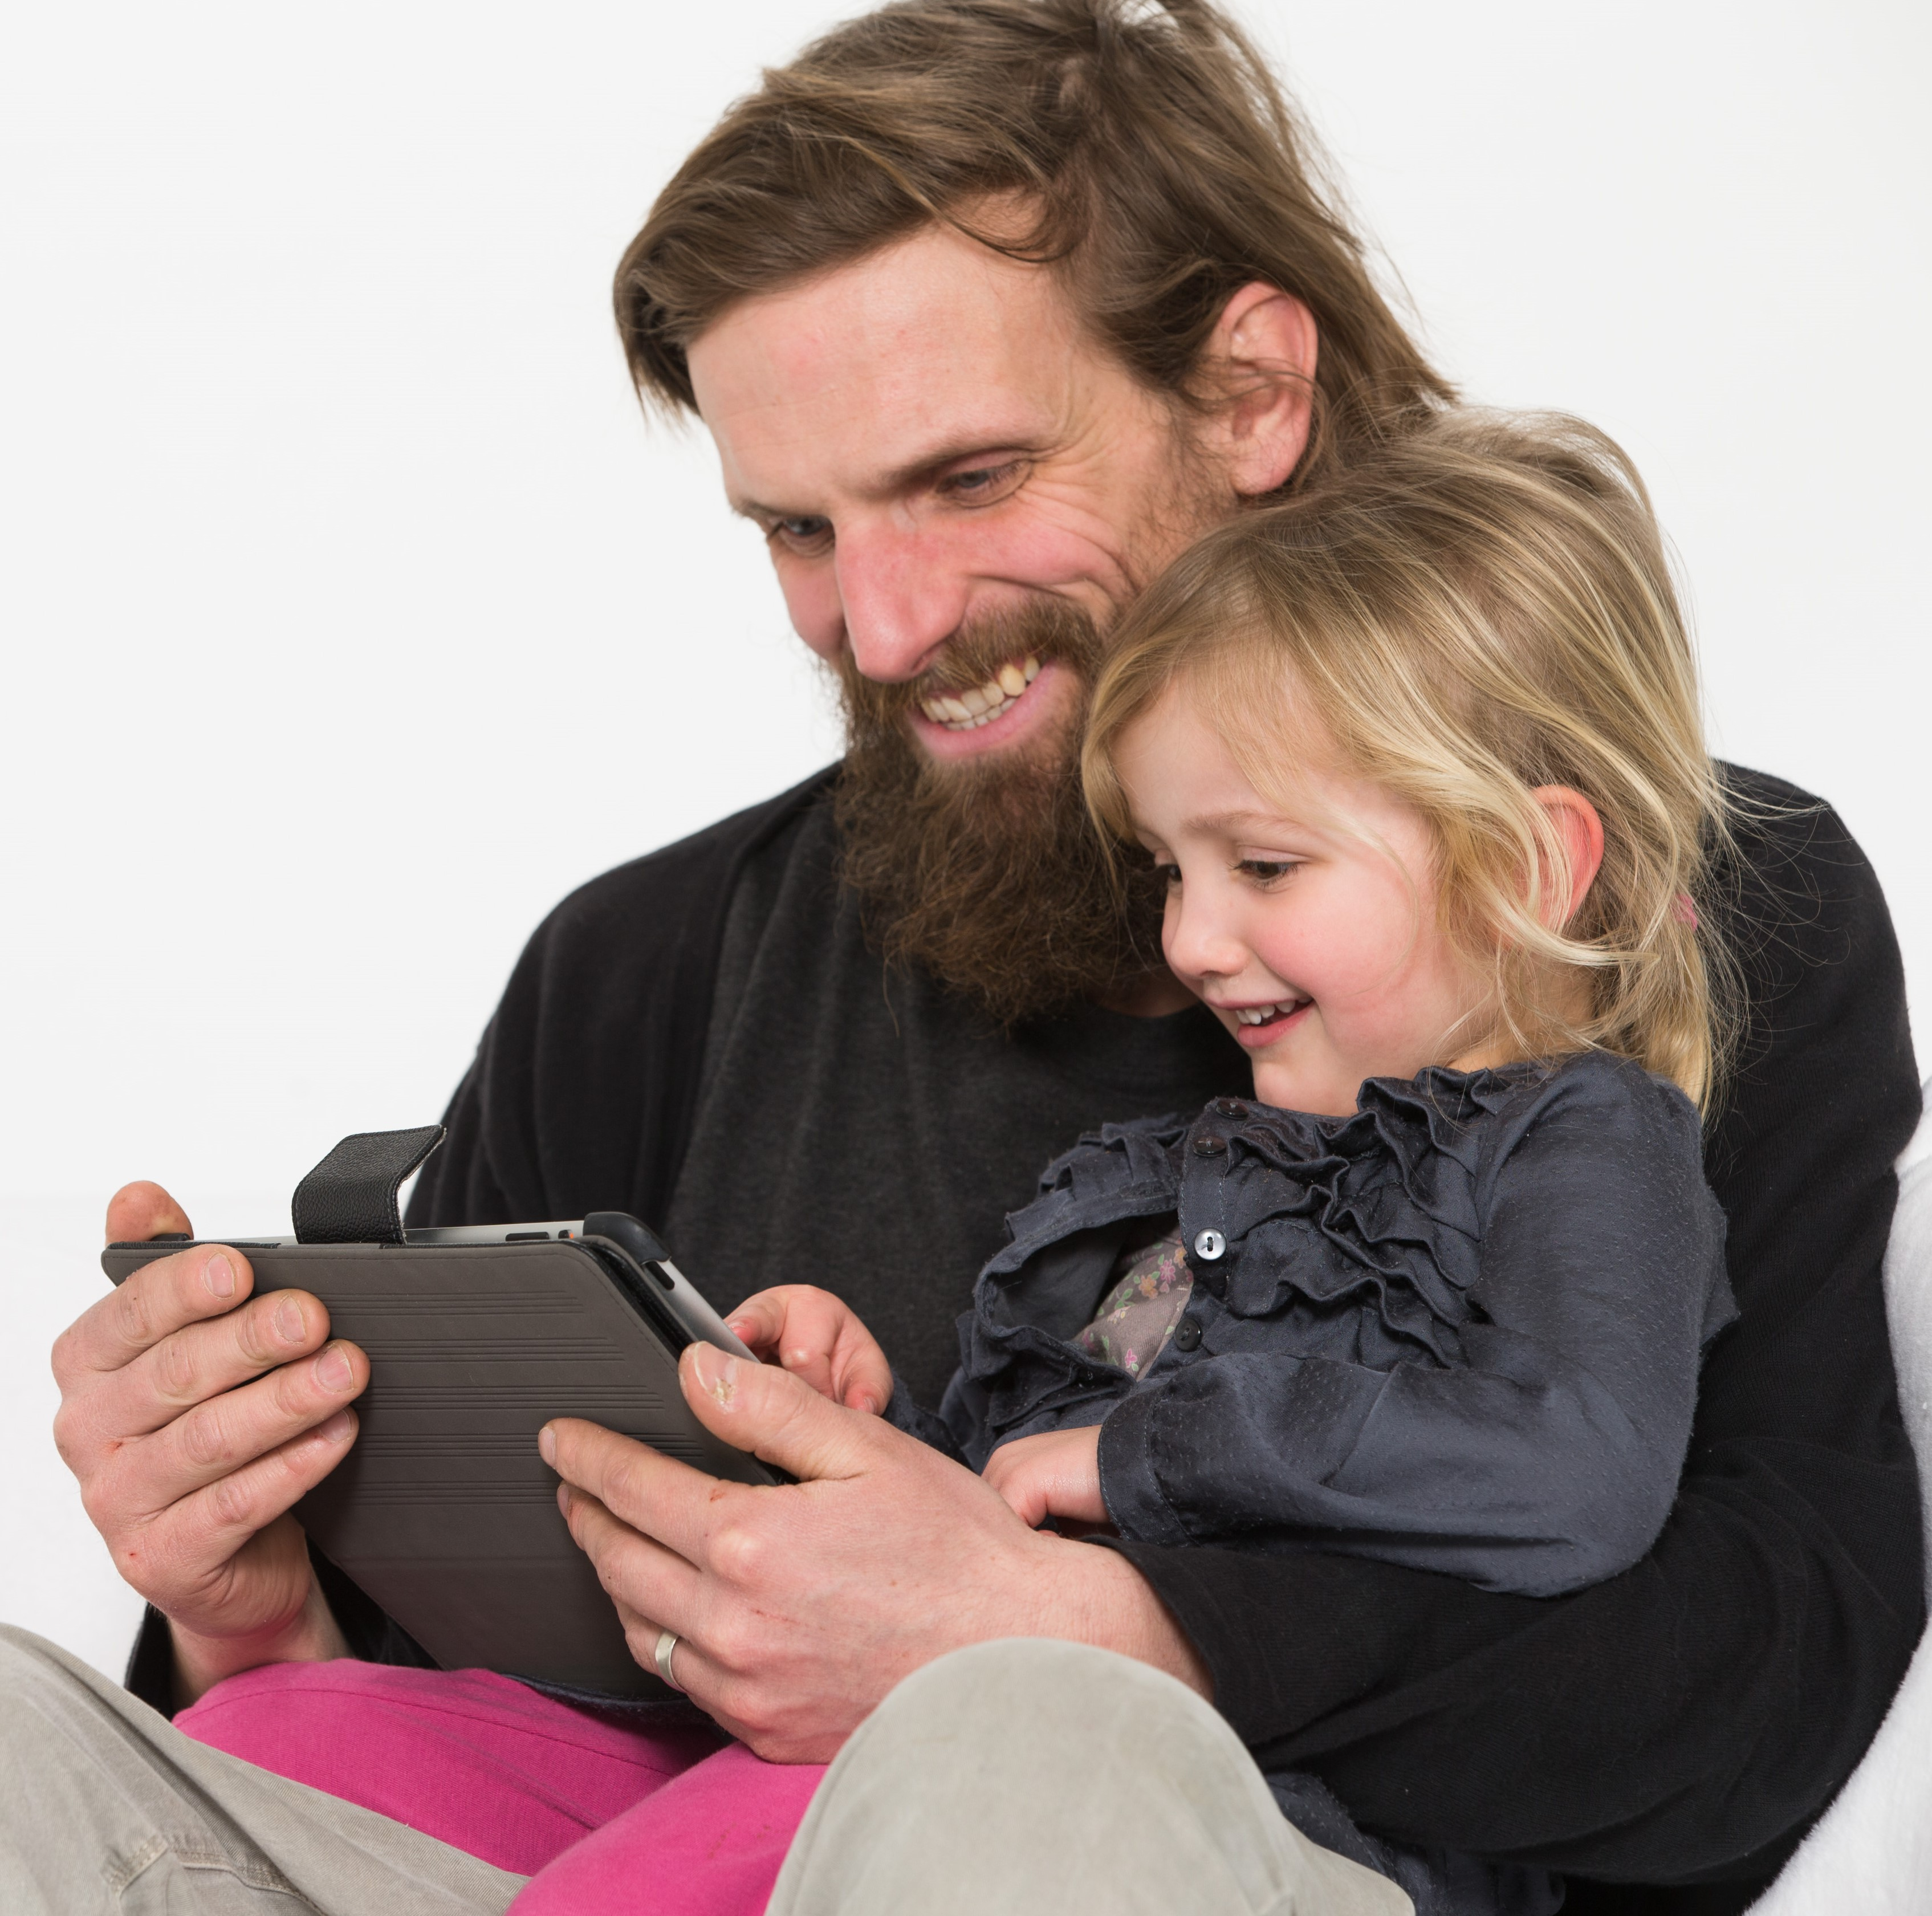 Dad and daughter sharing screen time together